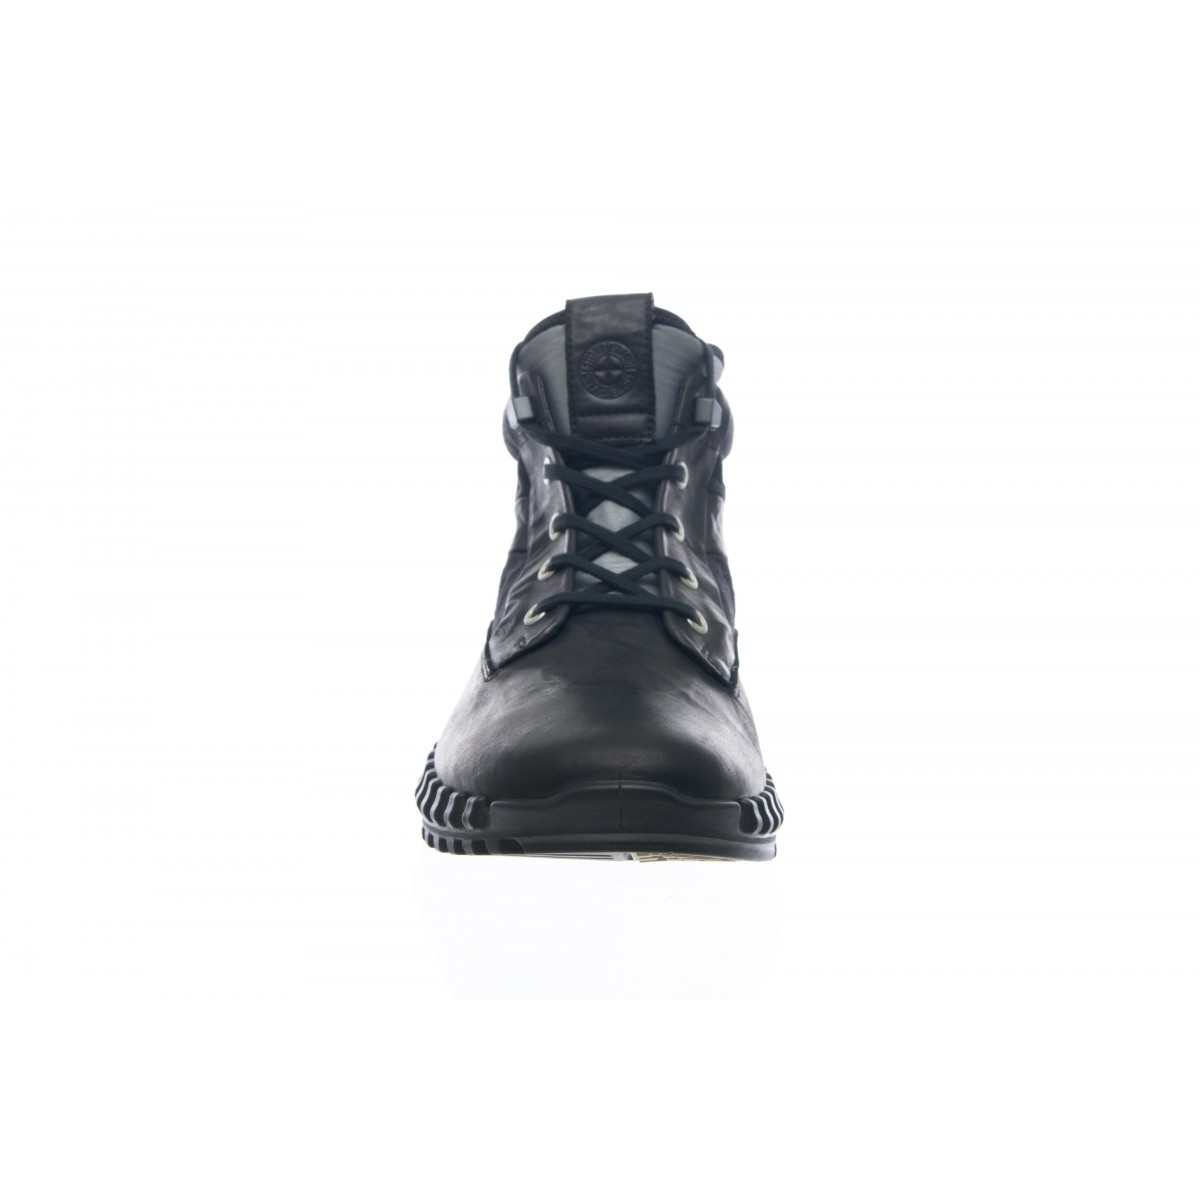 Scarpa - S0796 leather boot